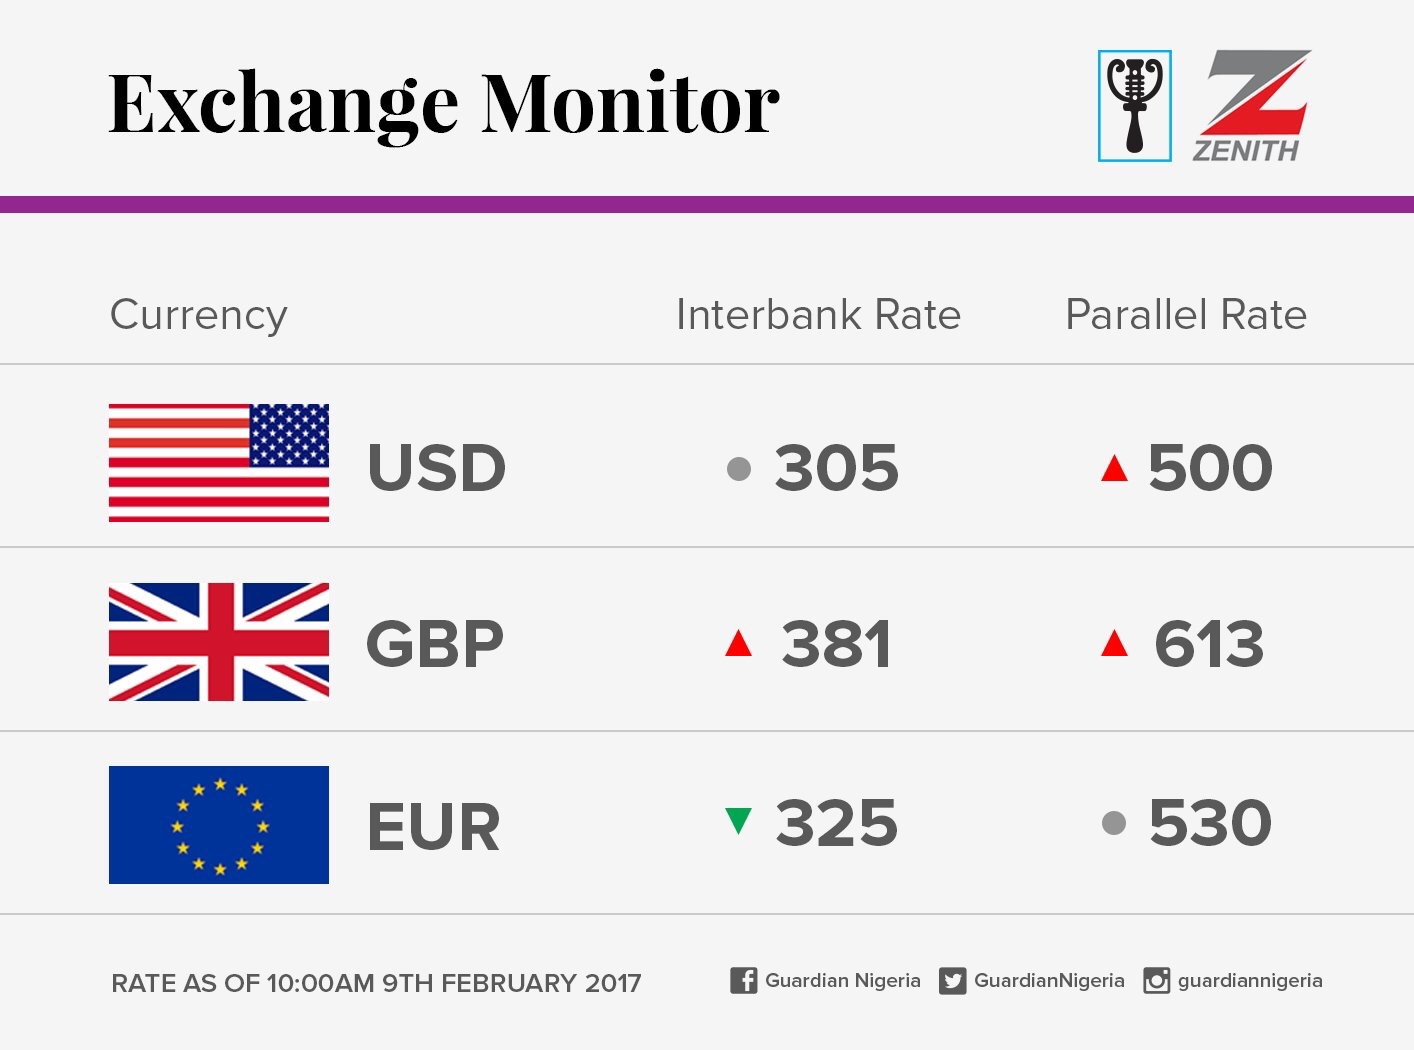 Exchange Rate For 9th February 2017